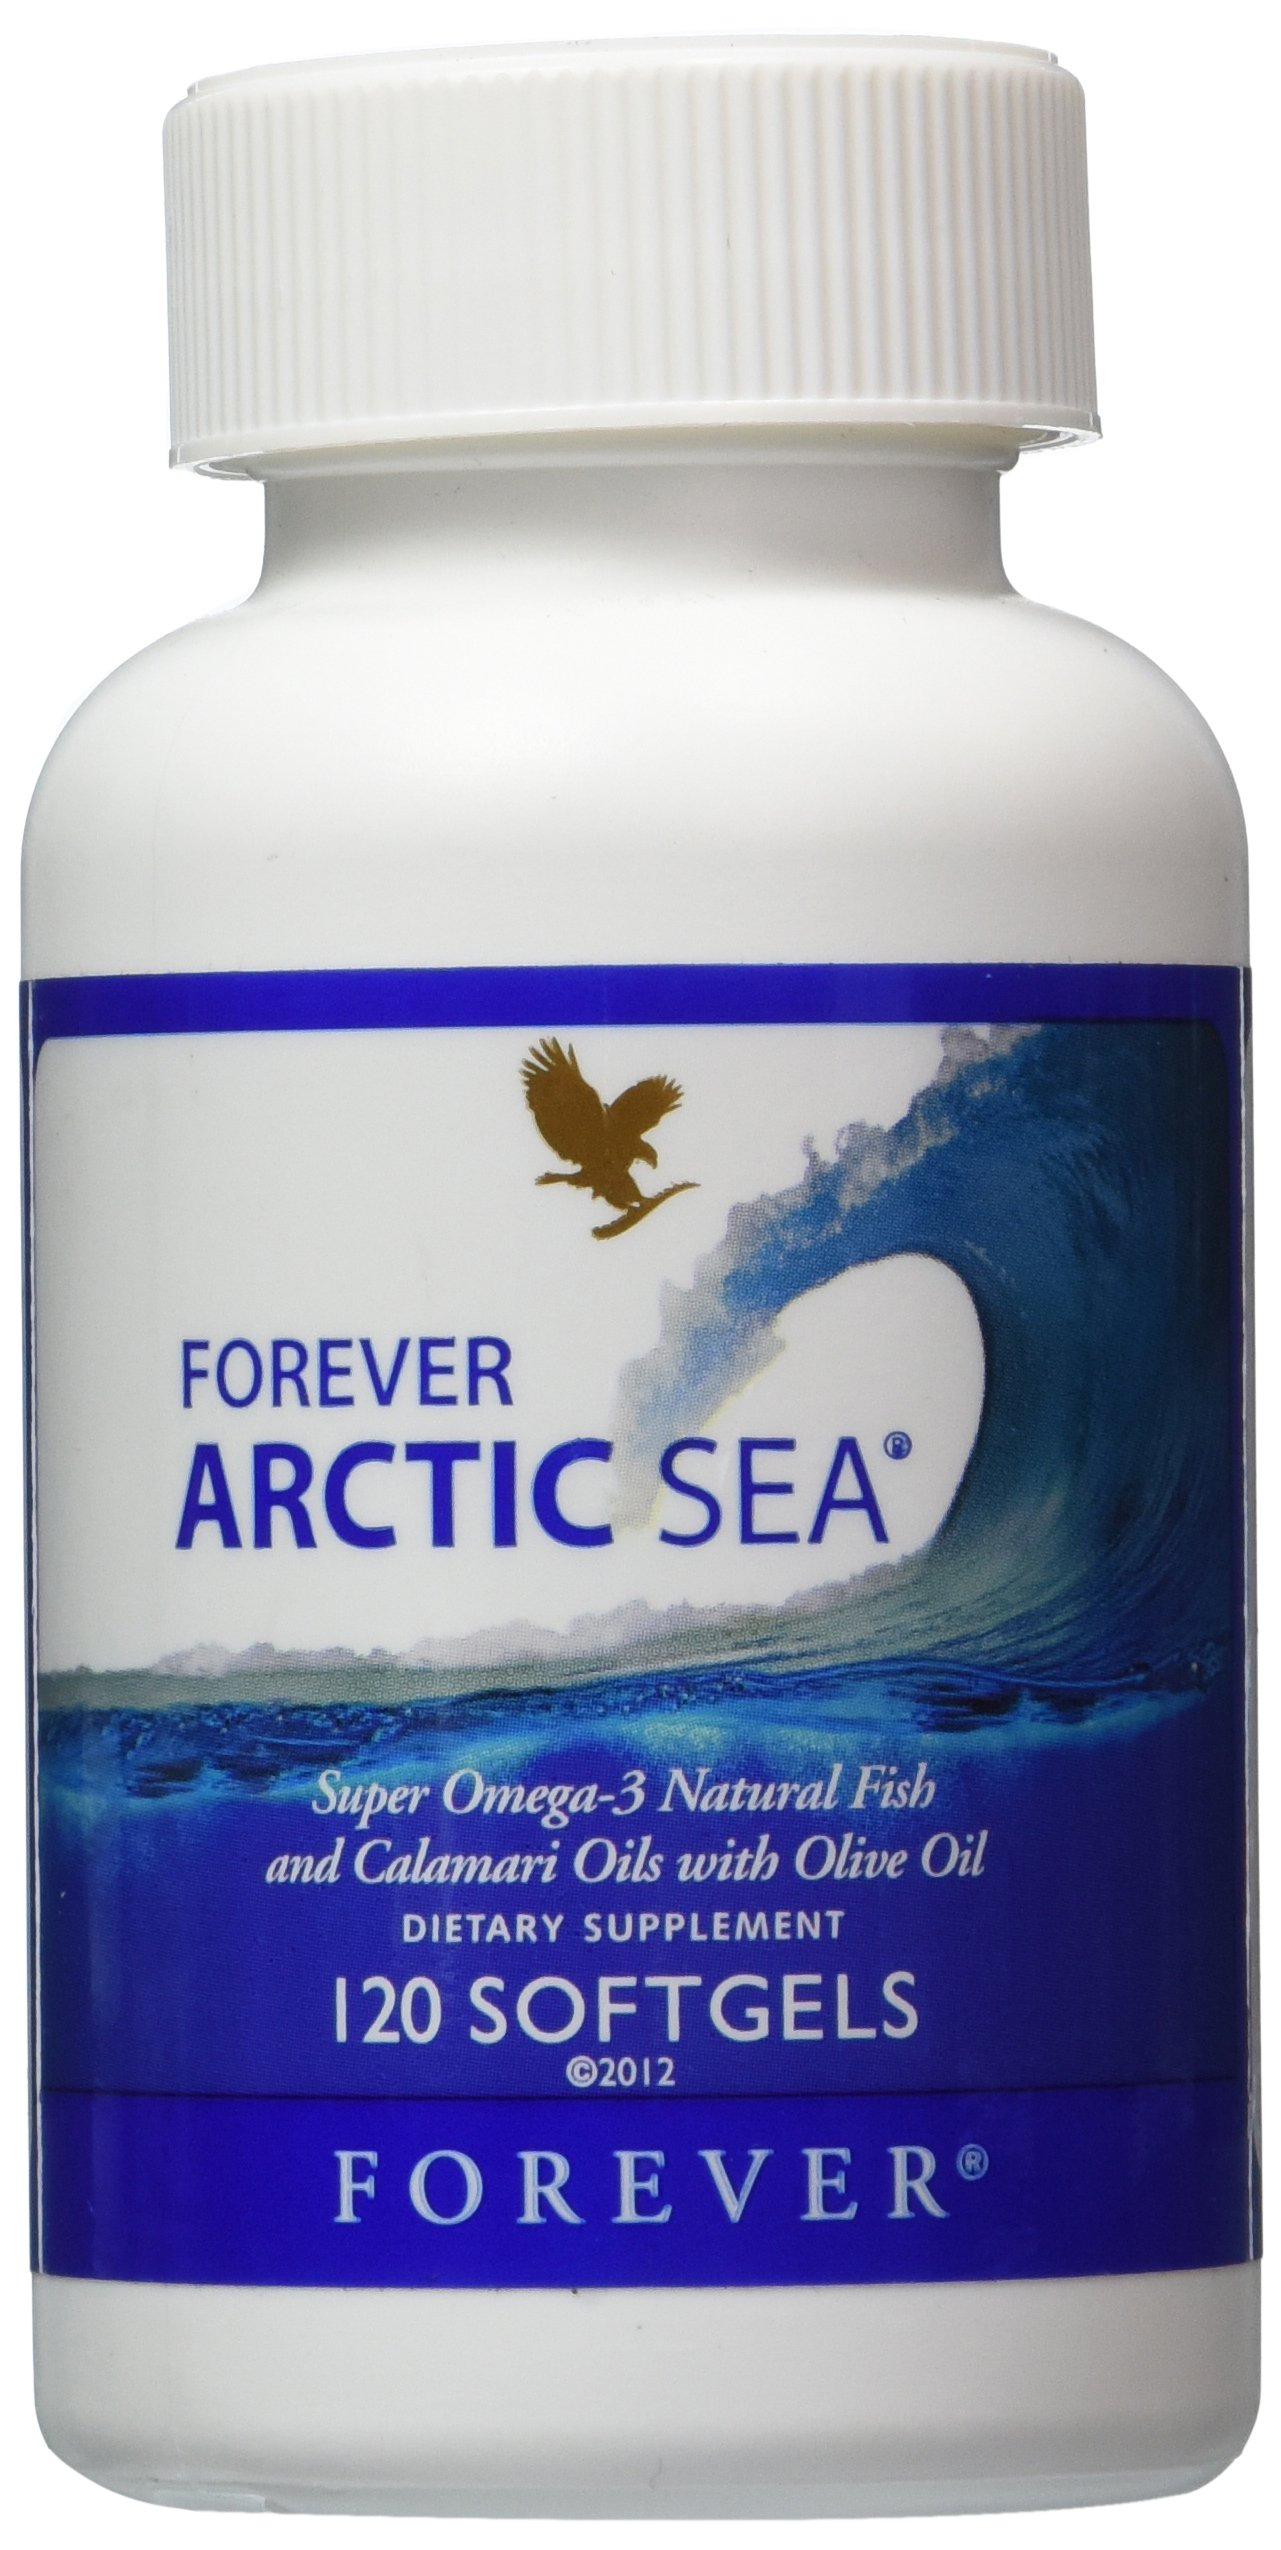 Forever Arctic-Sea super omega-3 natural fish calamari oils with olive oil,